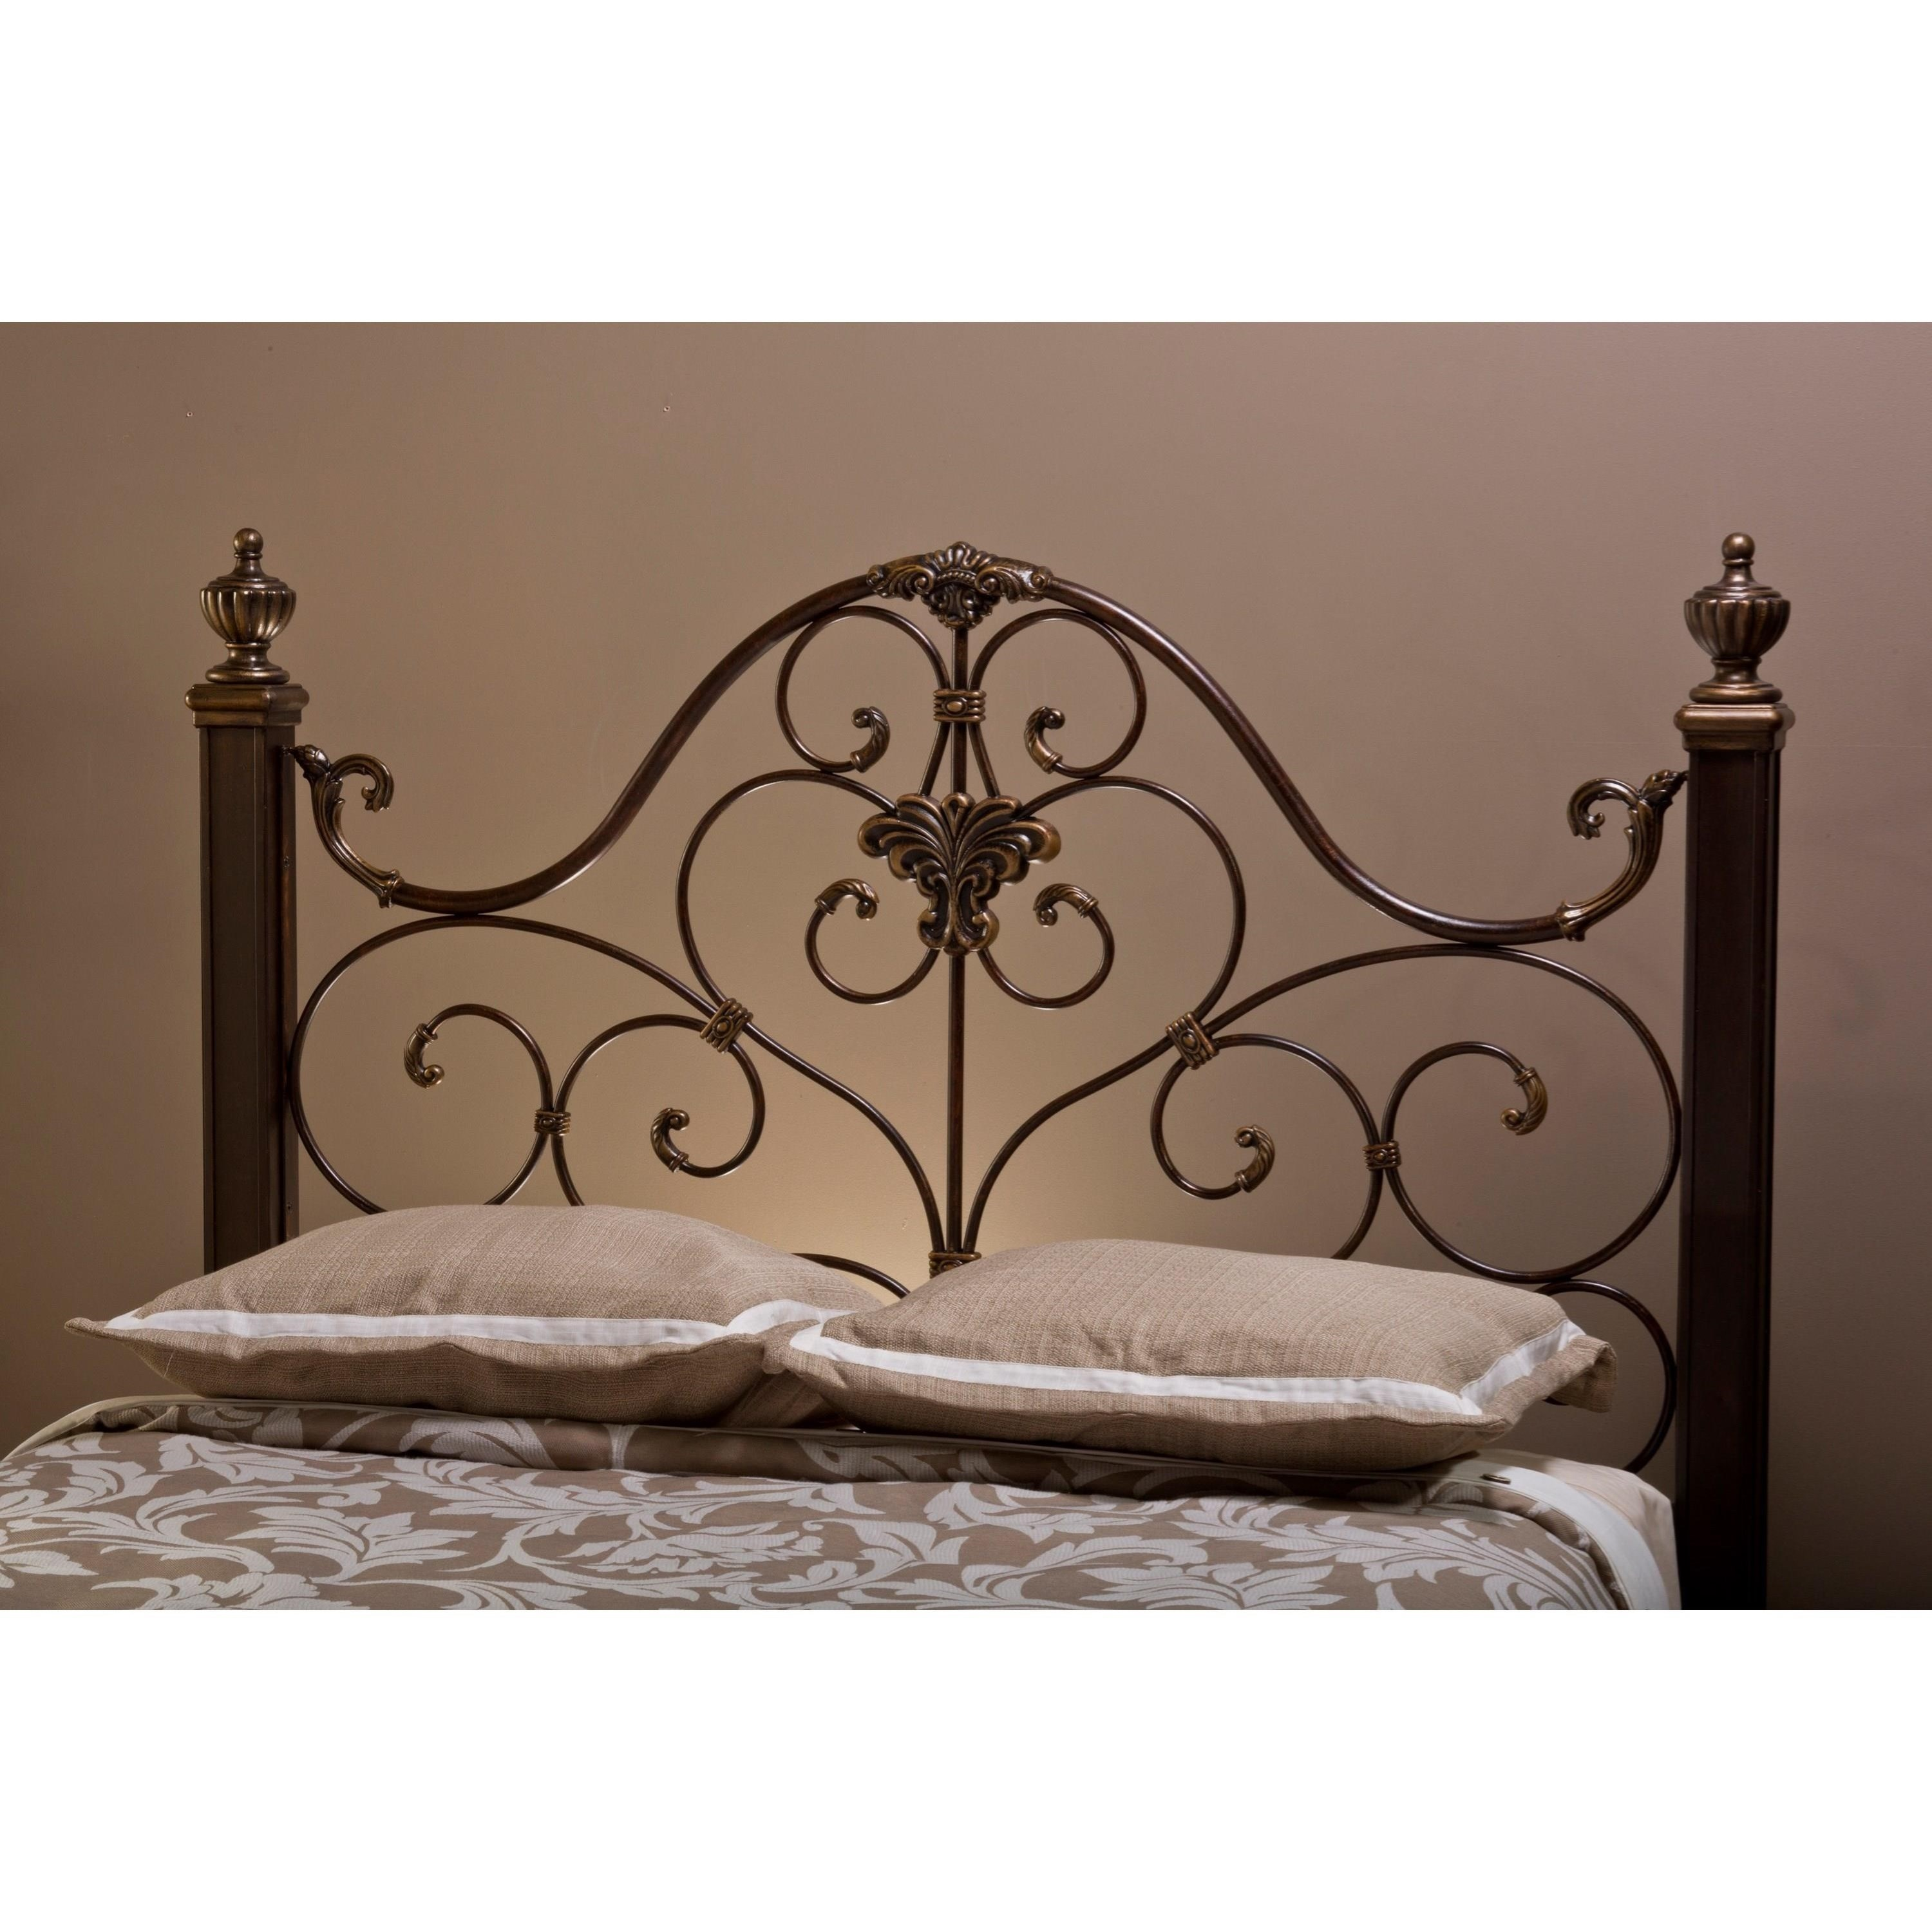 Hillsdale Metal Beds Queen Headboard with Rails - Item Number: 1648HQR